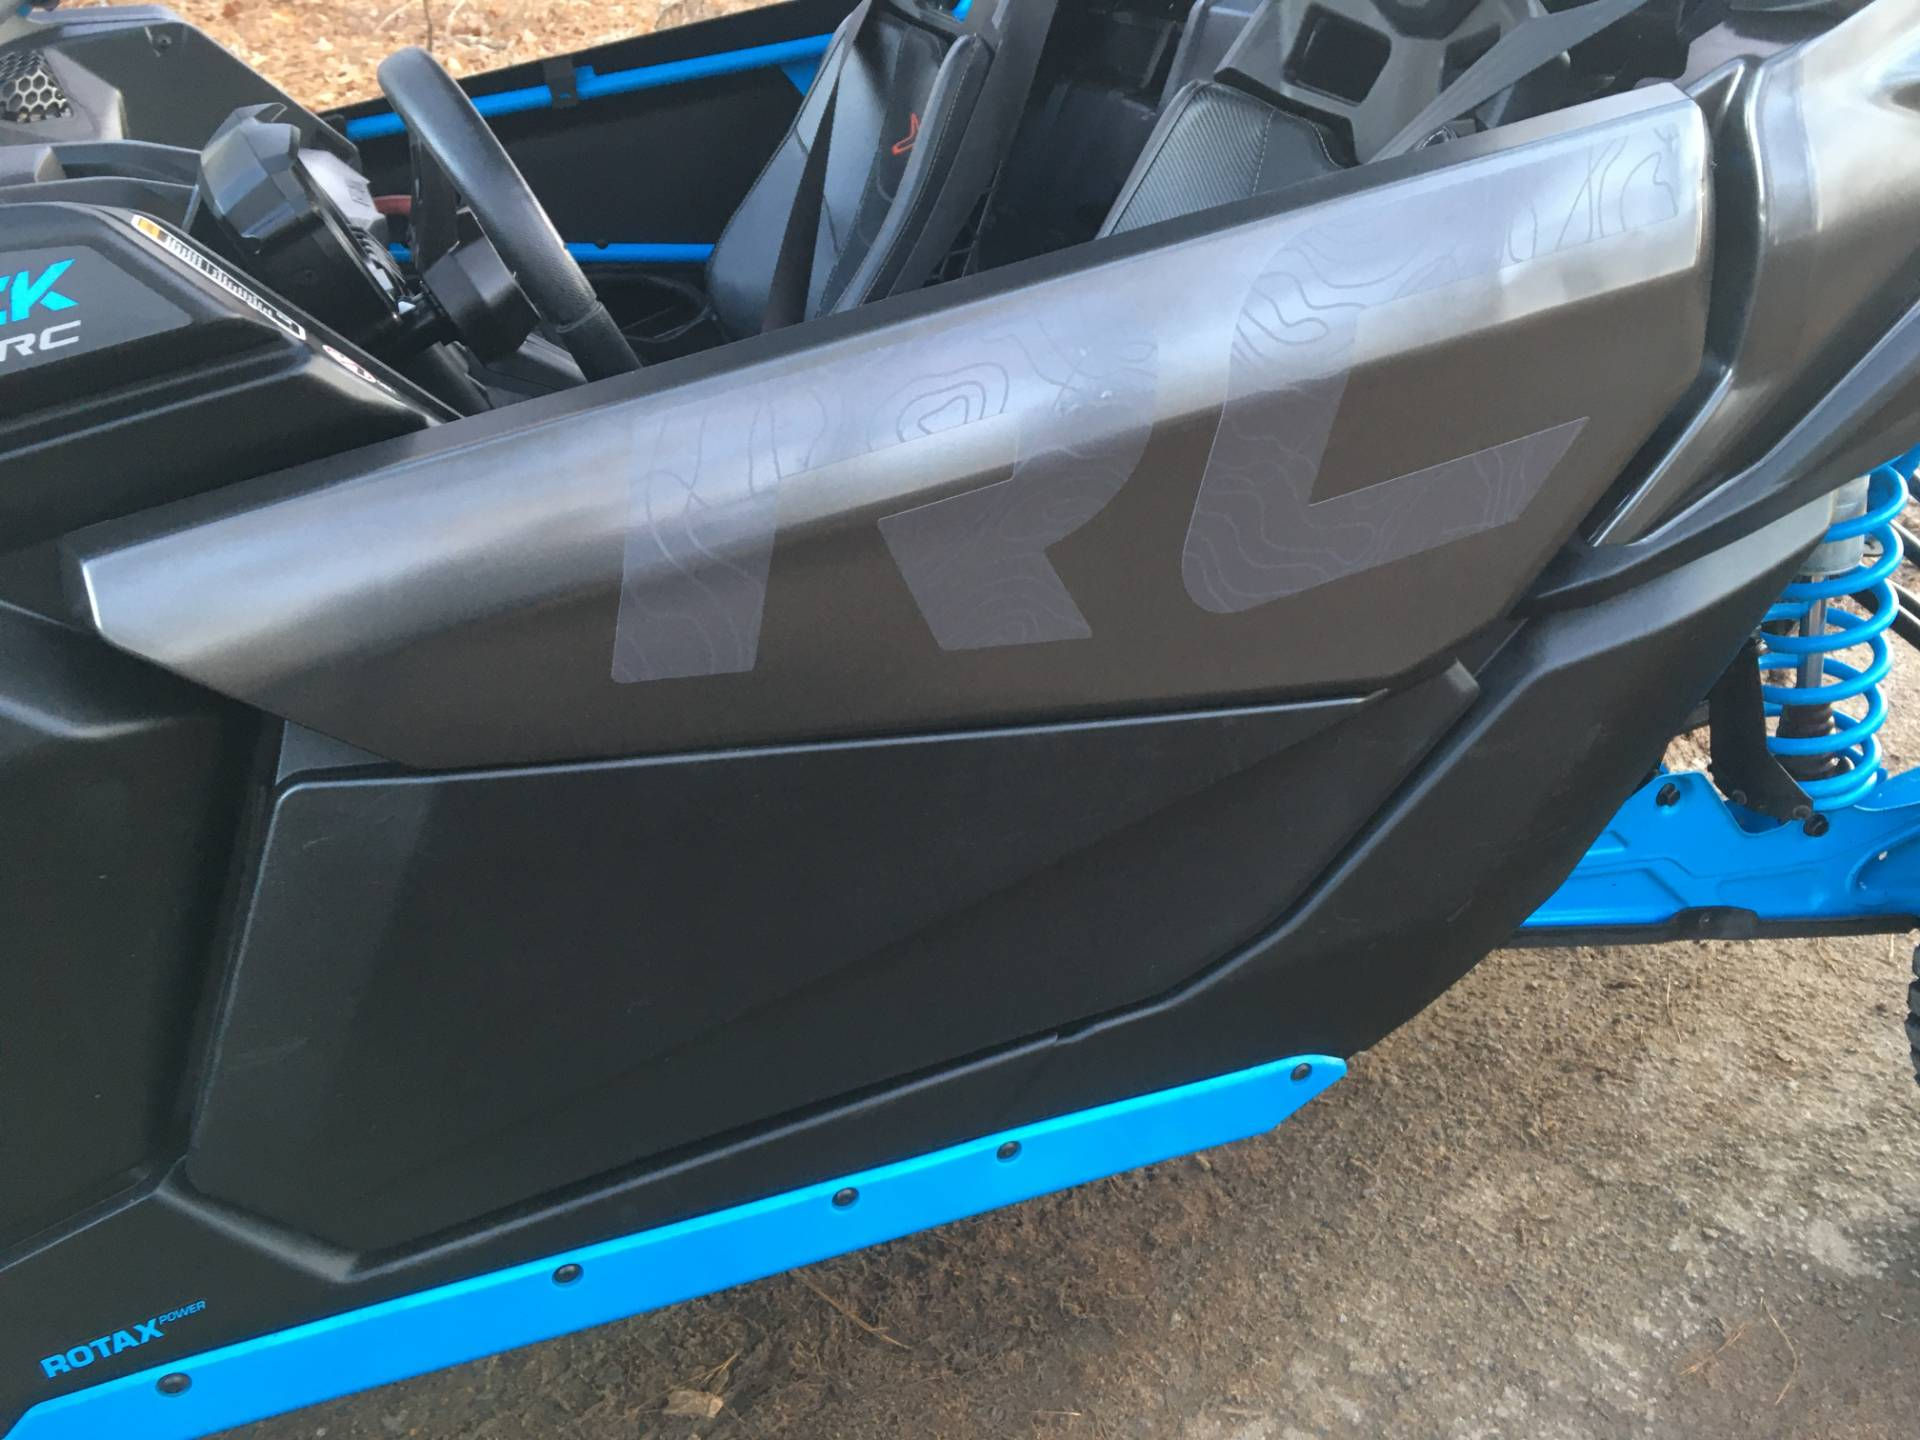 2019 CAN-AM MAVERICK X3 X RC TURBO R in Woodstock, Georgia - Photo 6